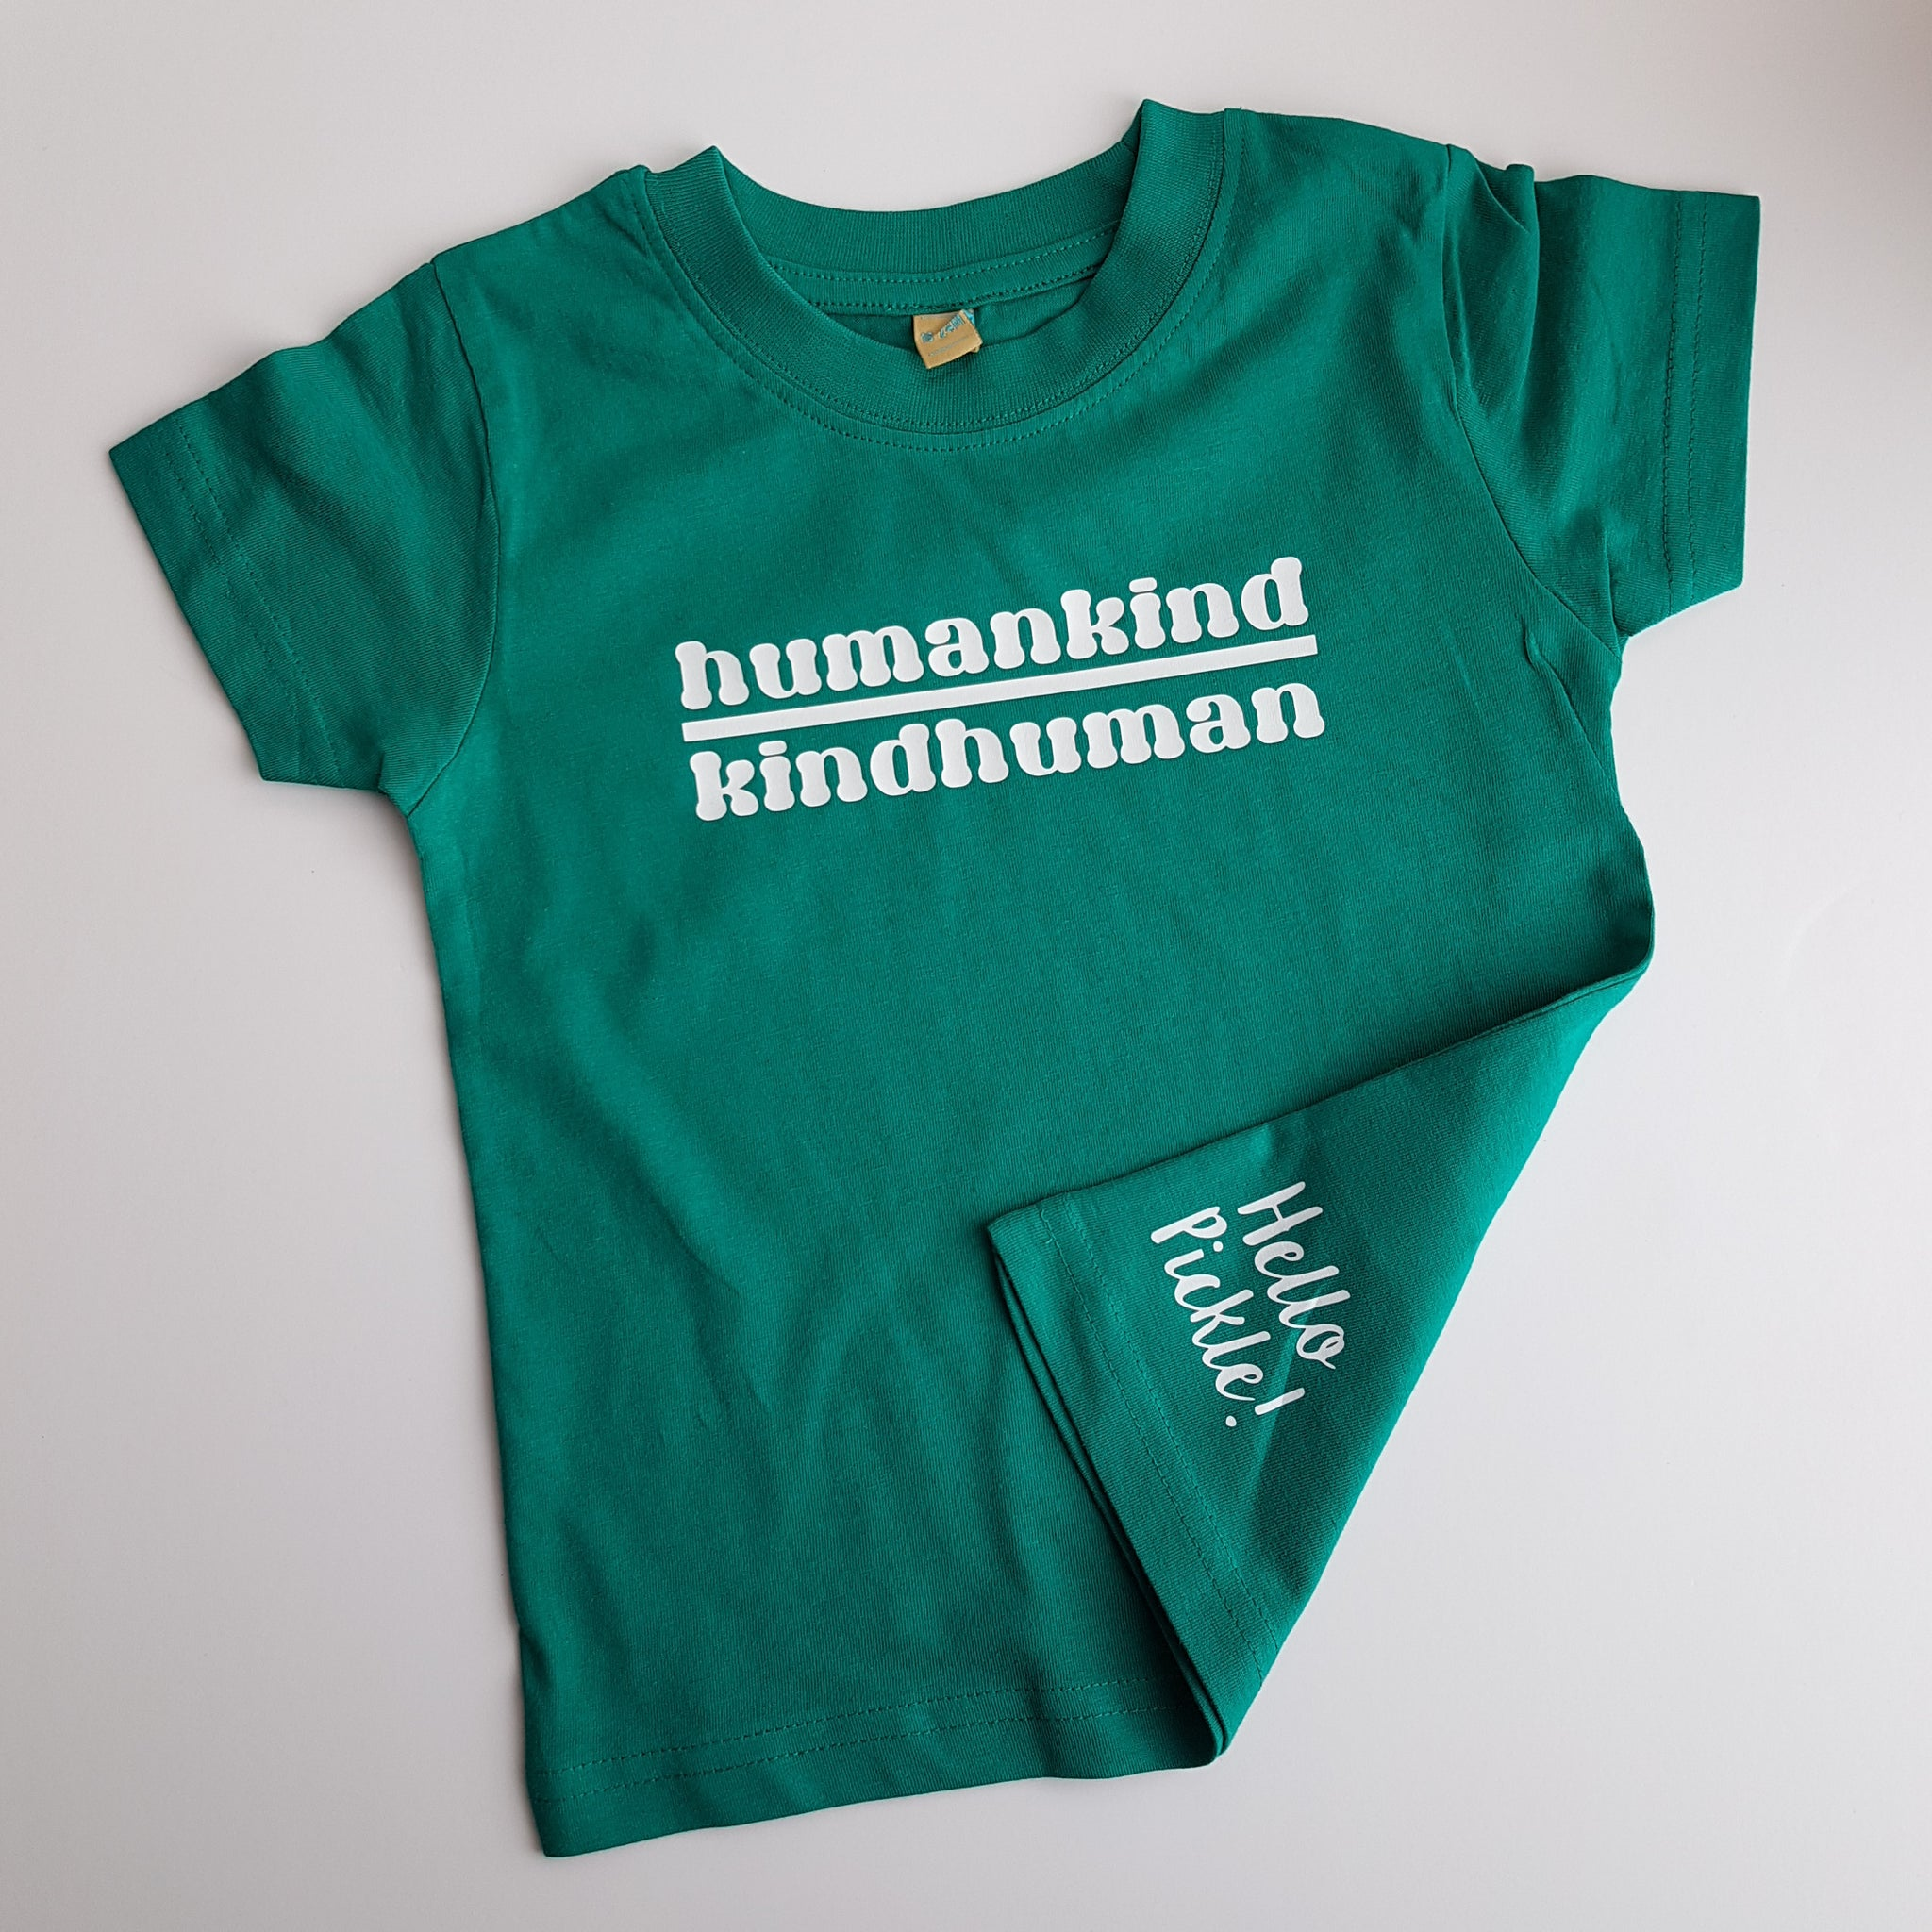 KIDS Humankind Kindhuman Tshirt - Hello Pickle!